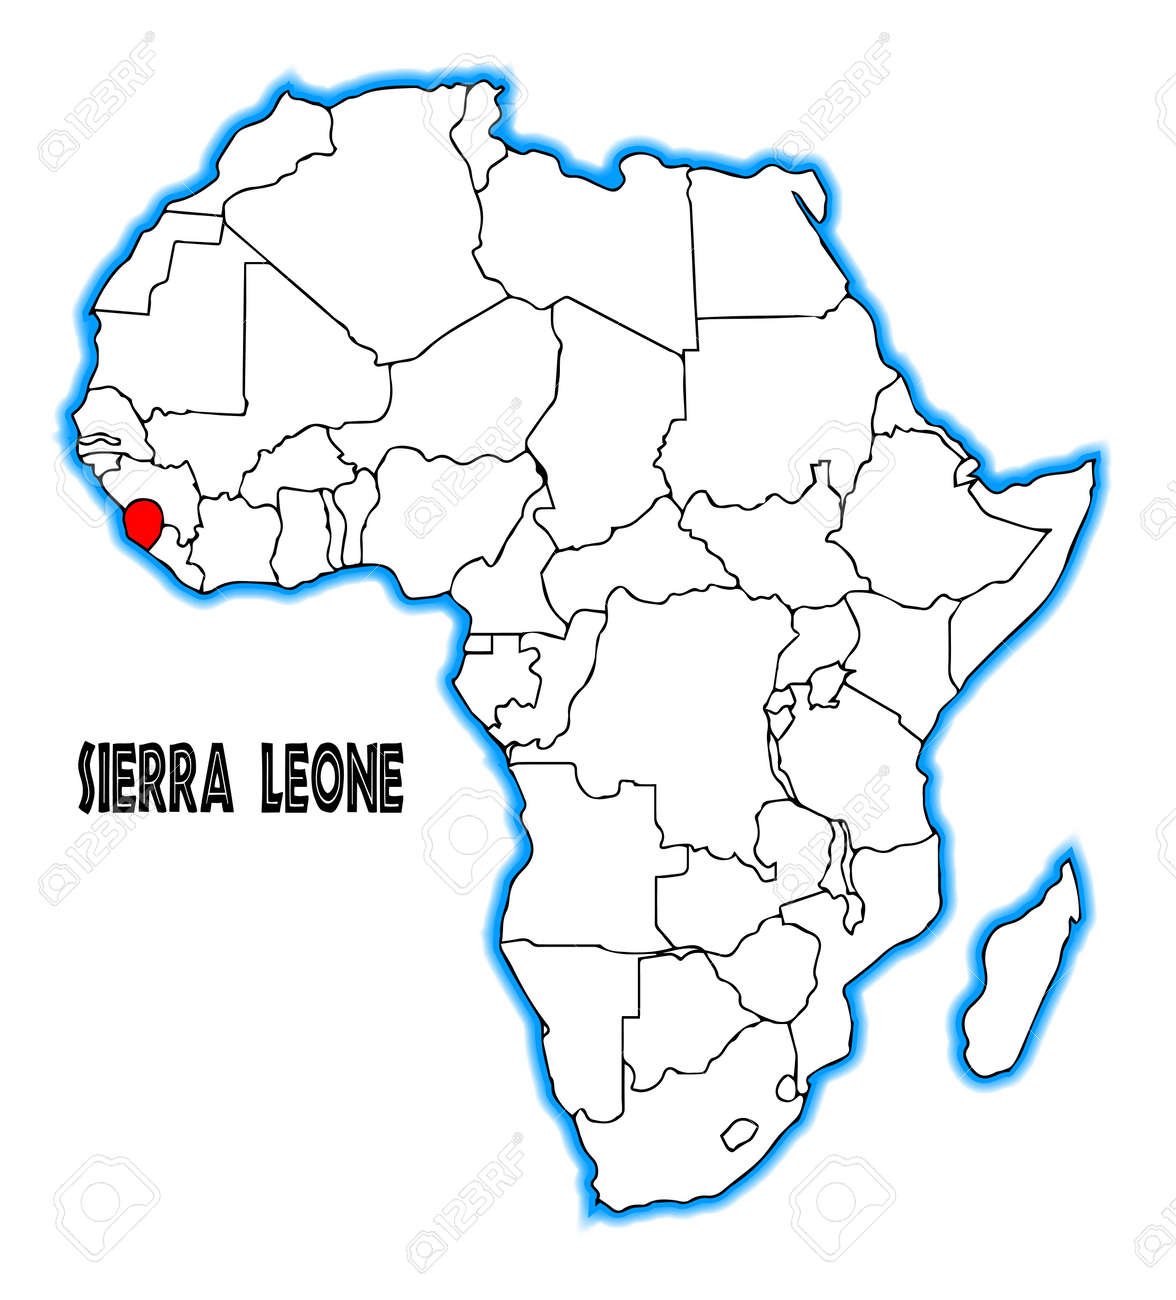 Sierra Leone Outline Inset Into A Map Of Africa Over A White